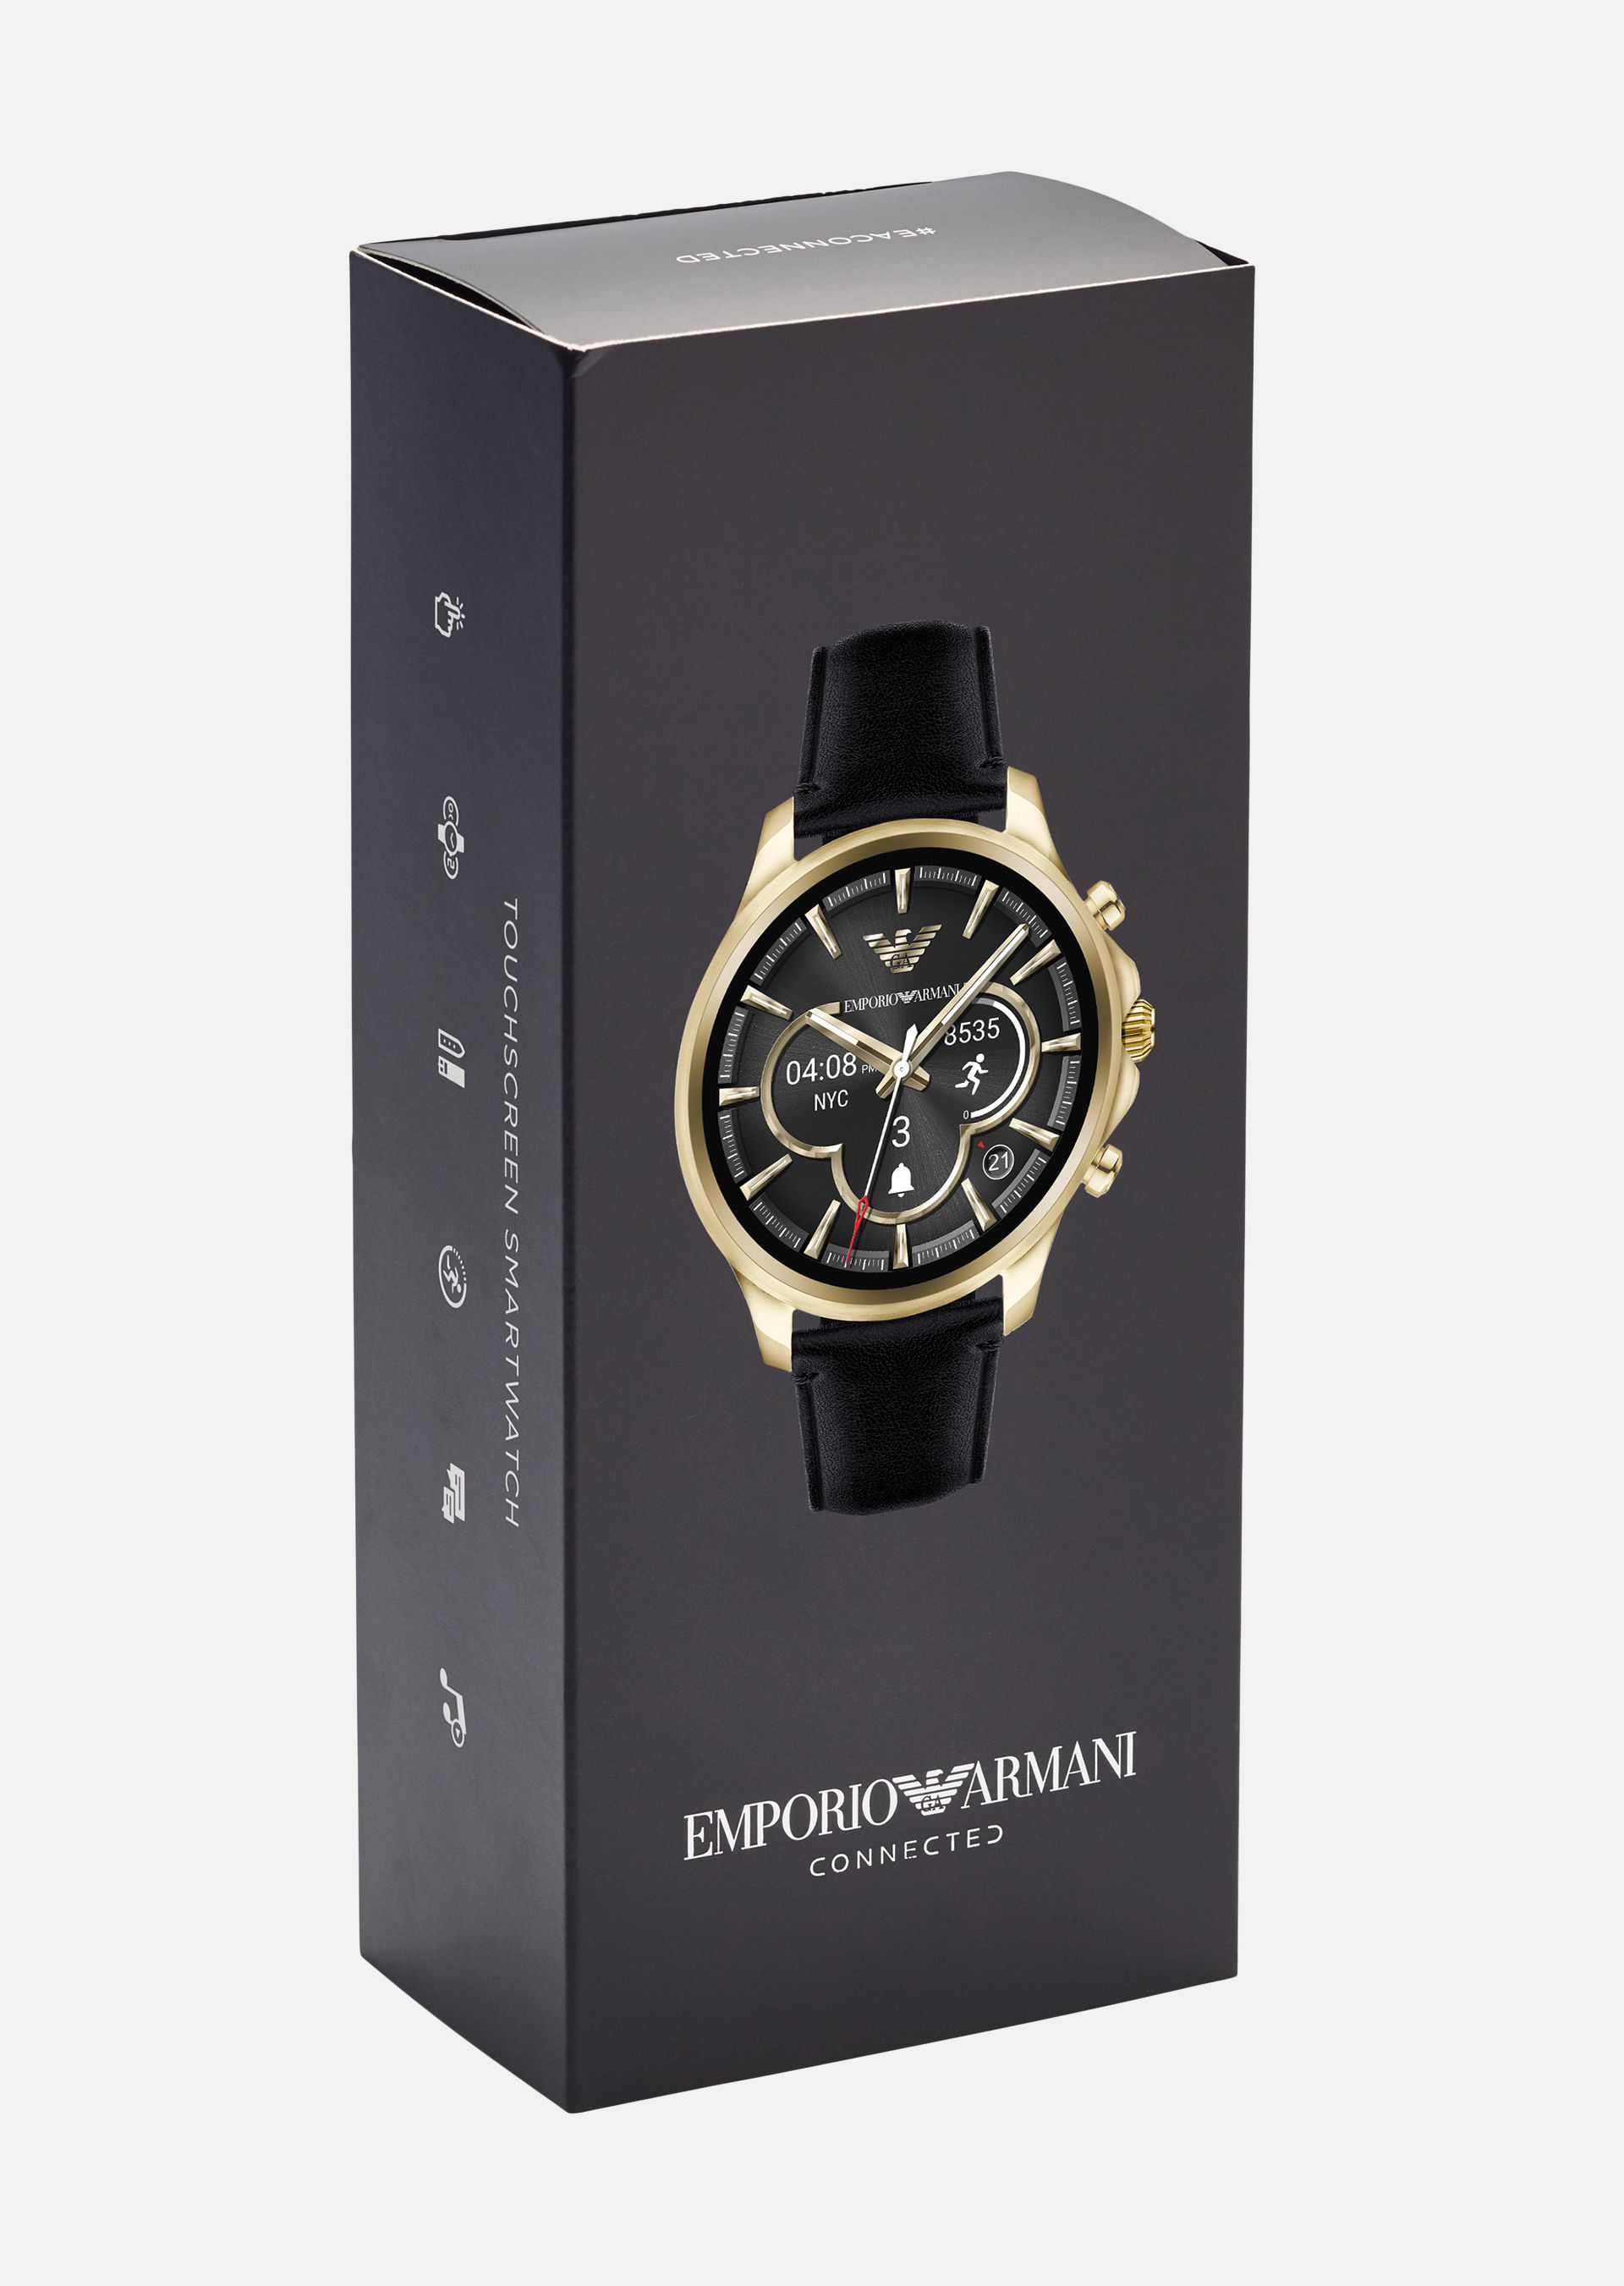 EMPORIO ARMANI SMARTWATCH TOUCHSCREEN 5004 Connected U a